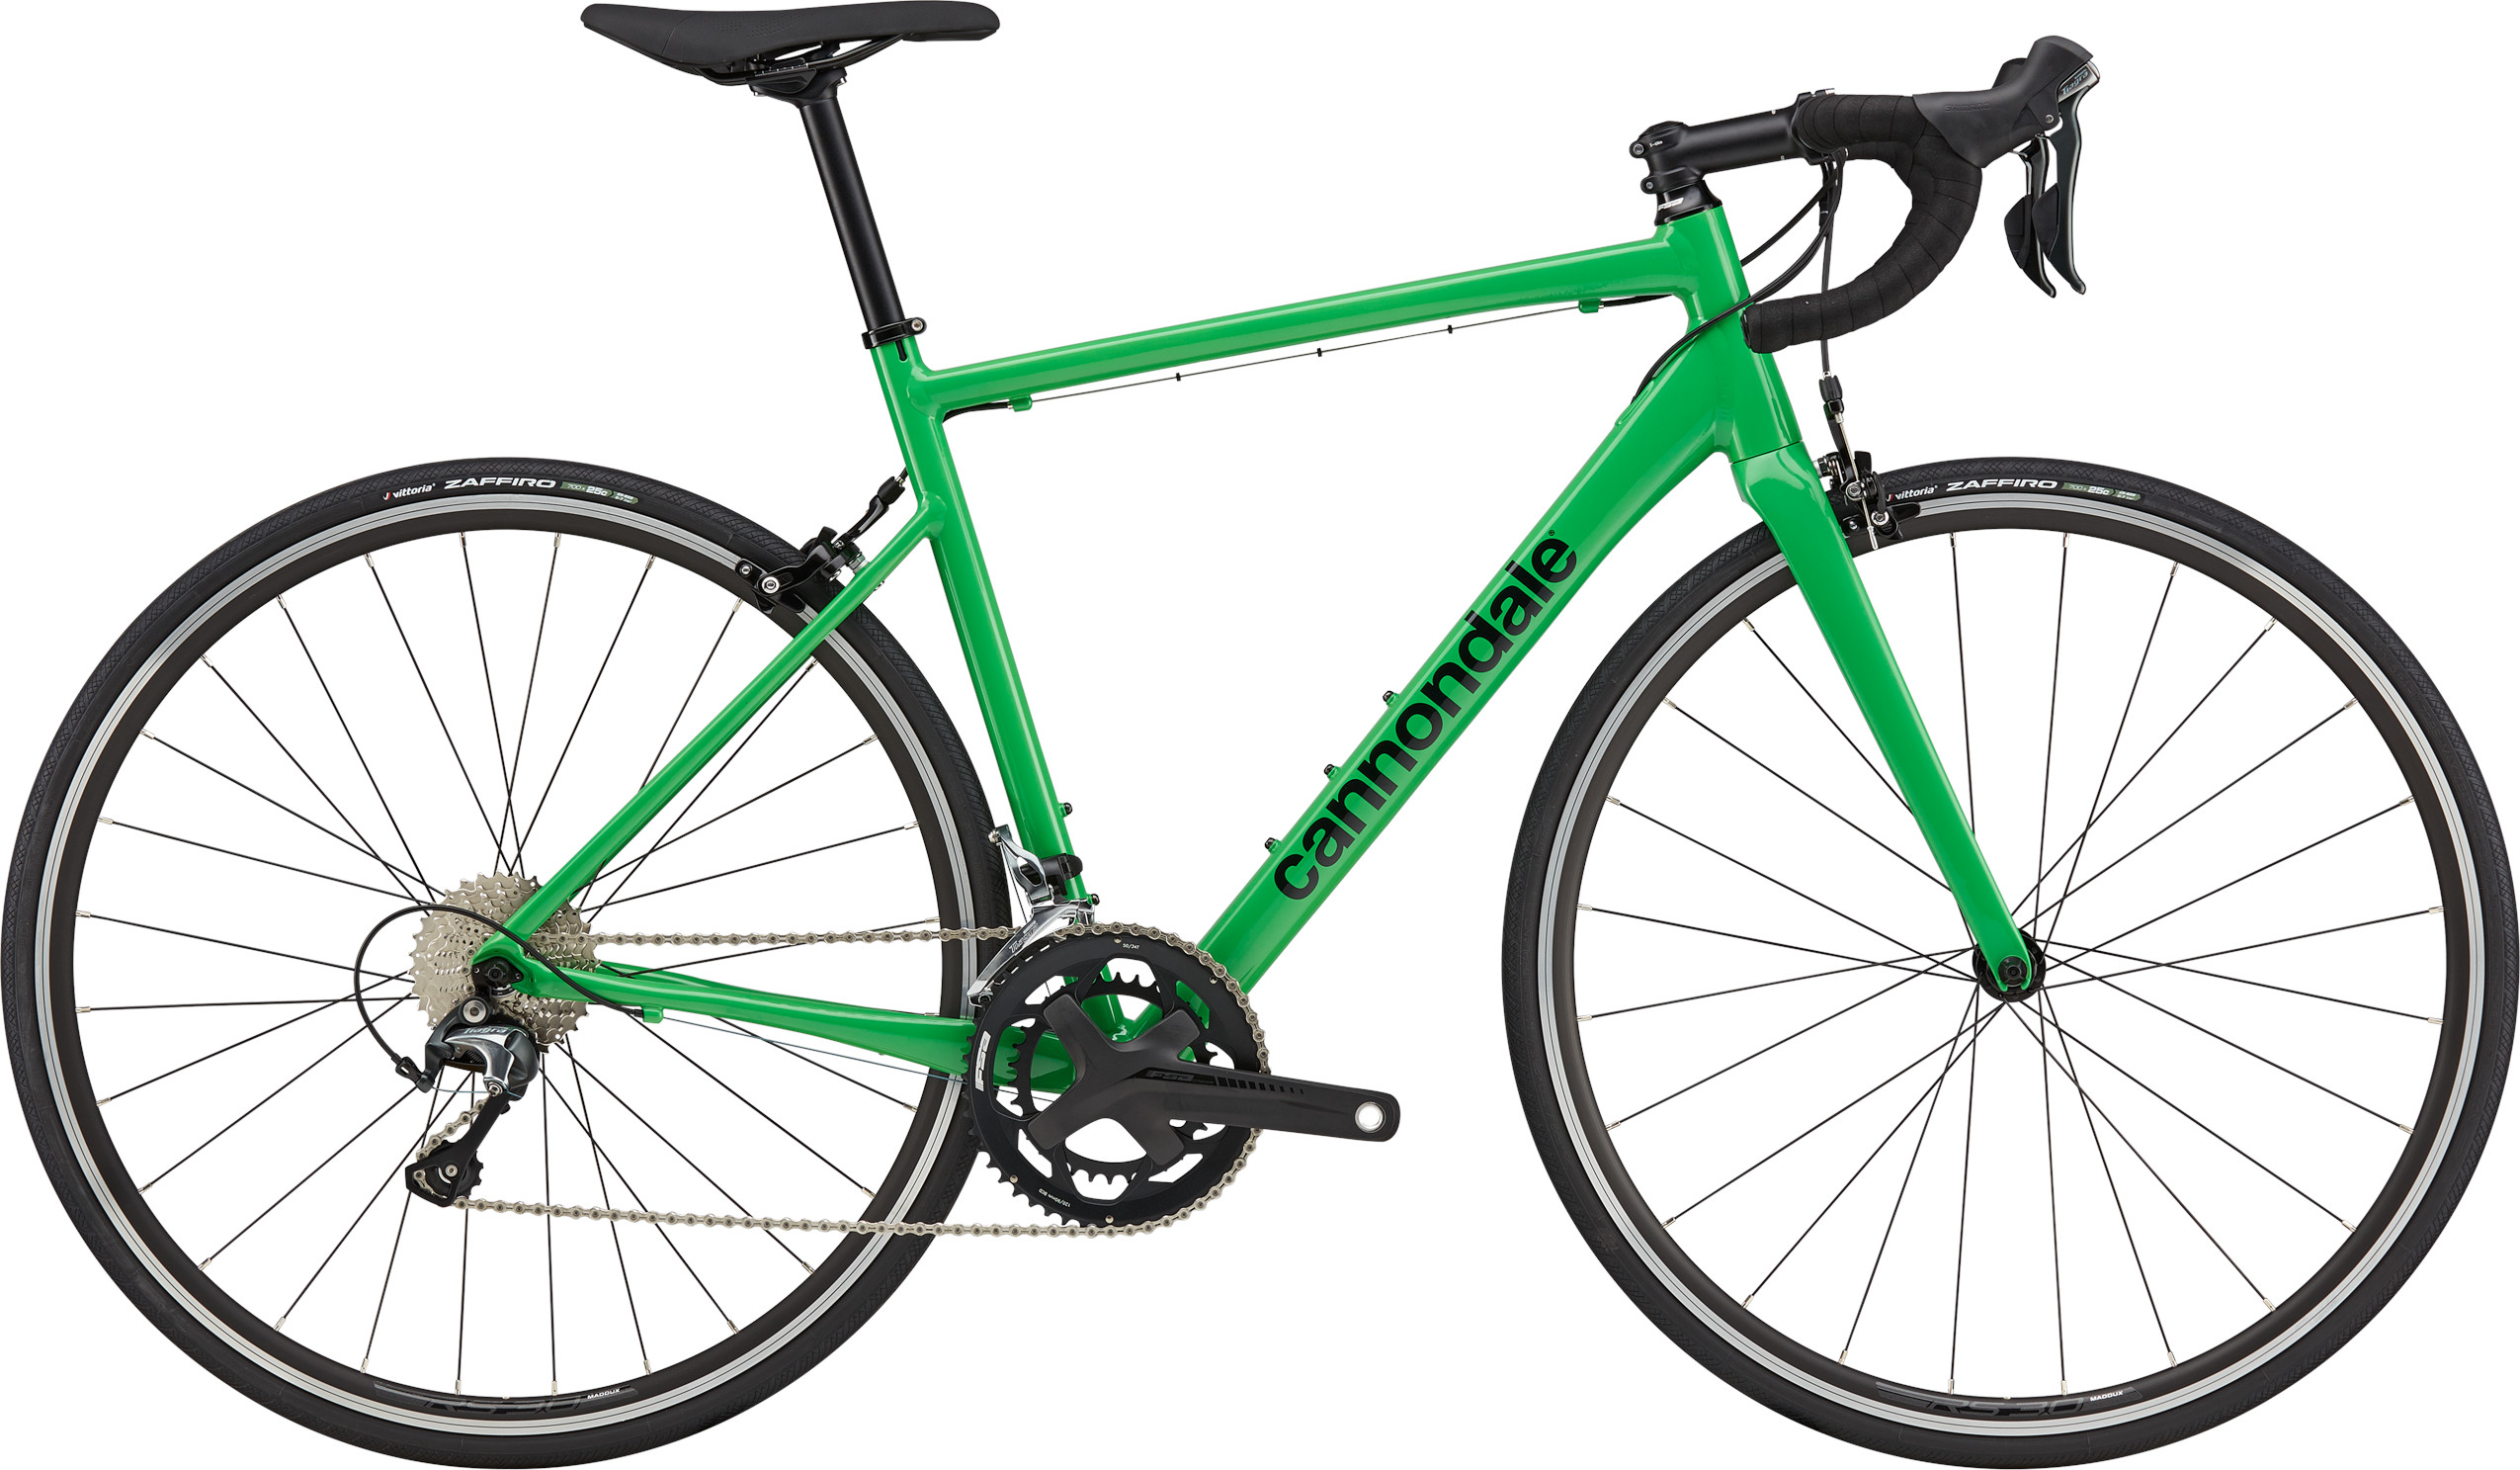 "Велосипед 28"" Cannondale CAAD Optimo 2 рама - 54см 2021 GRN фото"